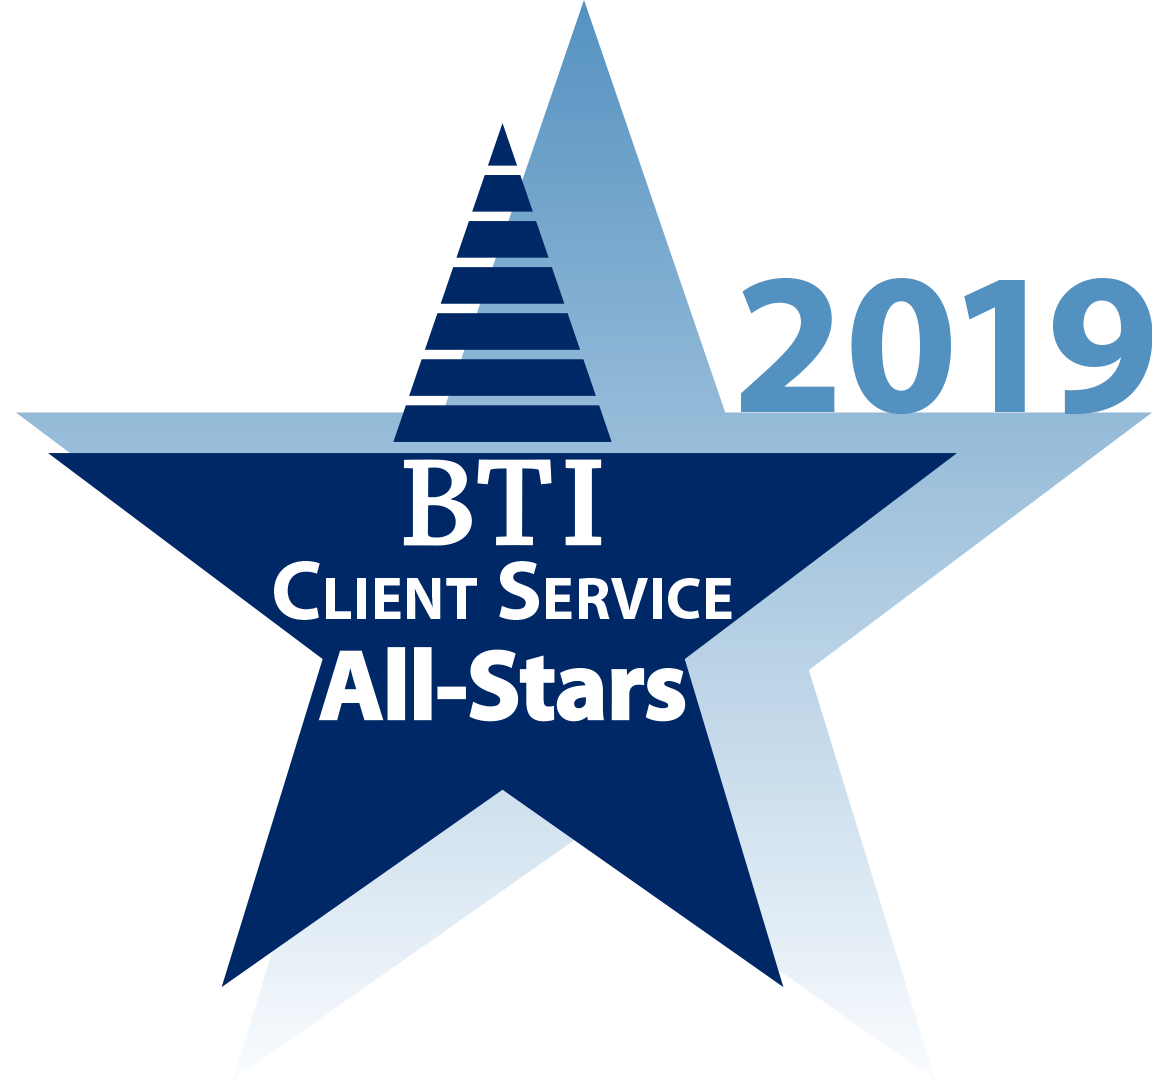 https://www.bticonsulting.com/bti-client-service-all-stars-for-law-firms